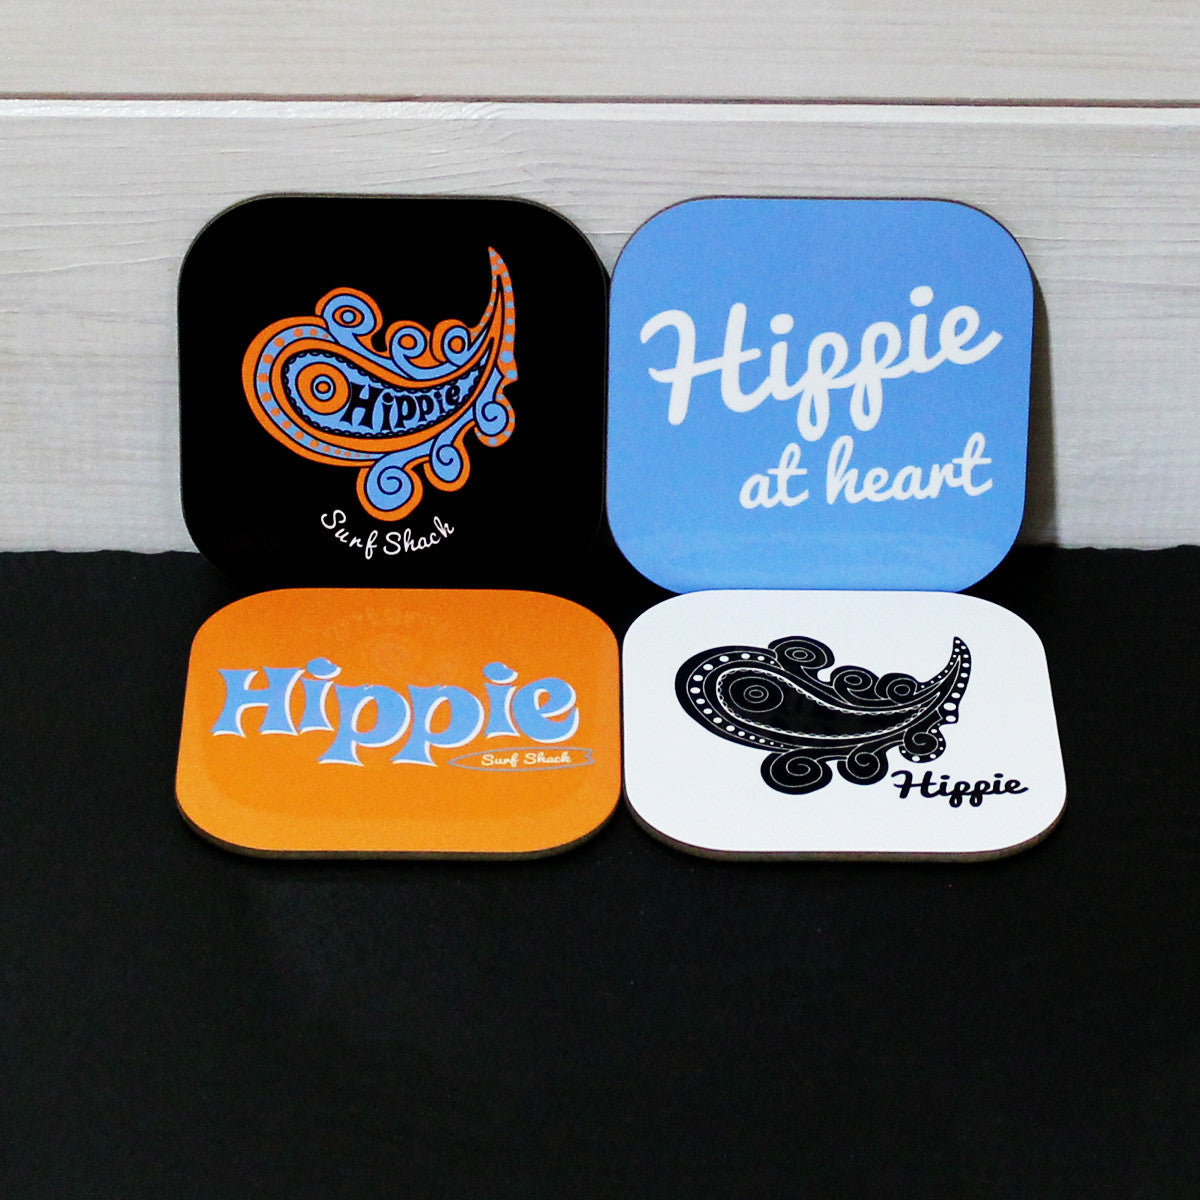 Hippie Surf Shack' Drink Coasters